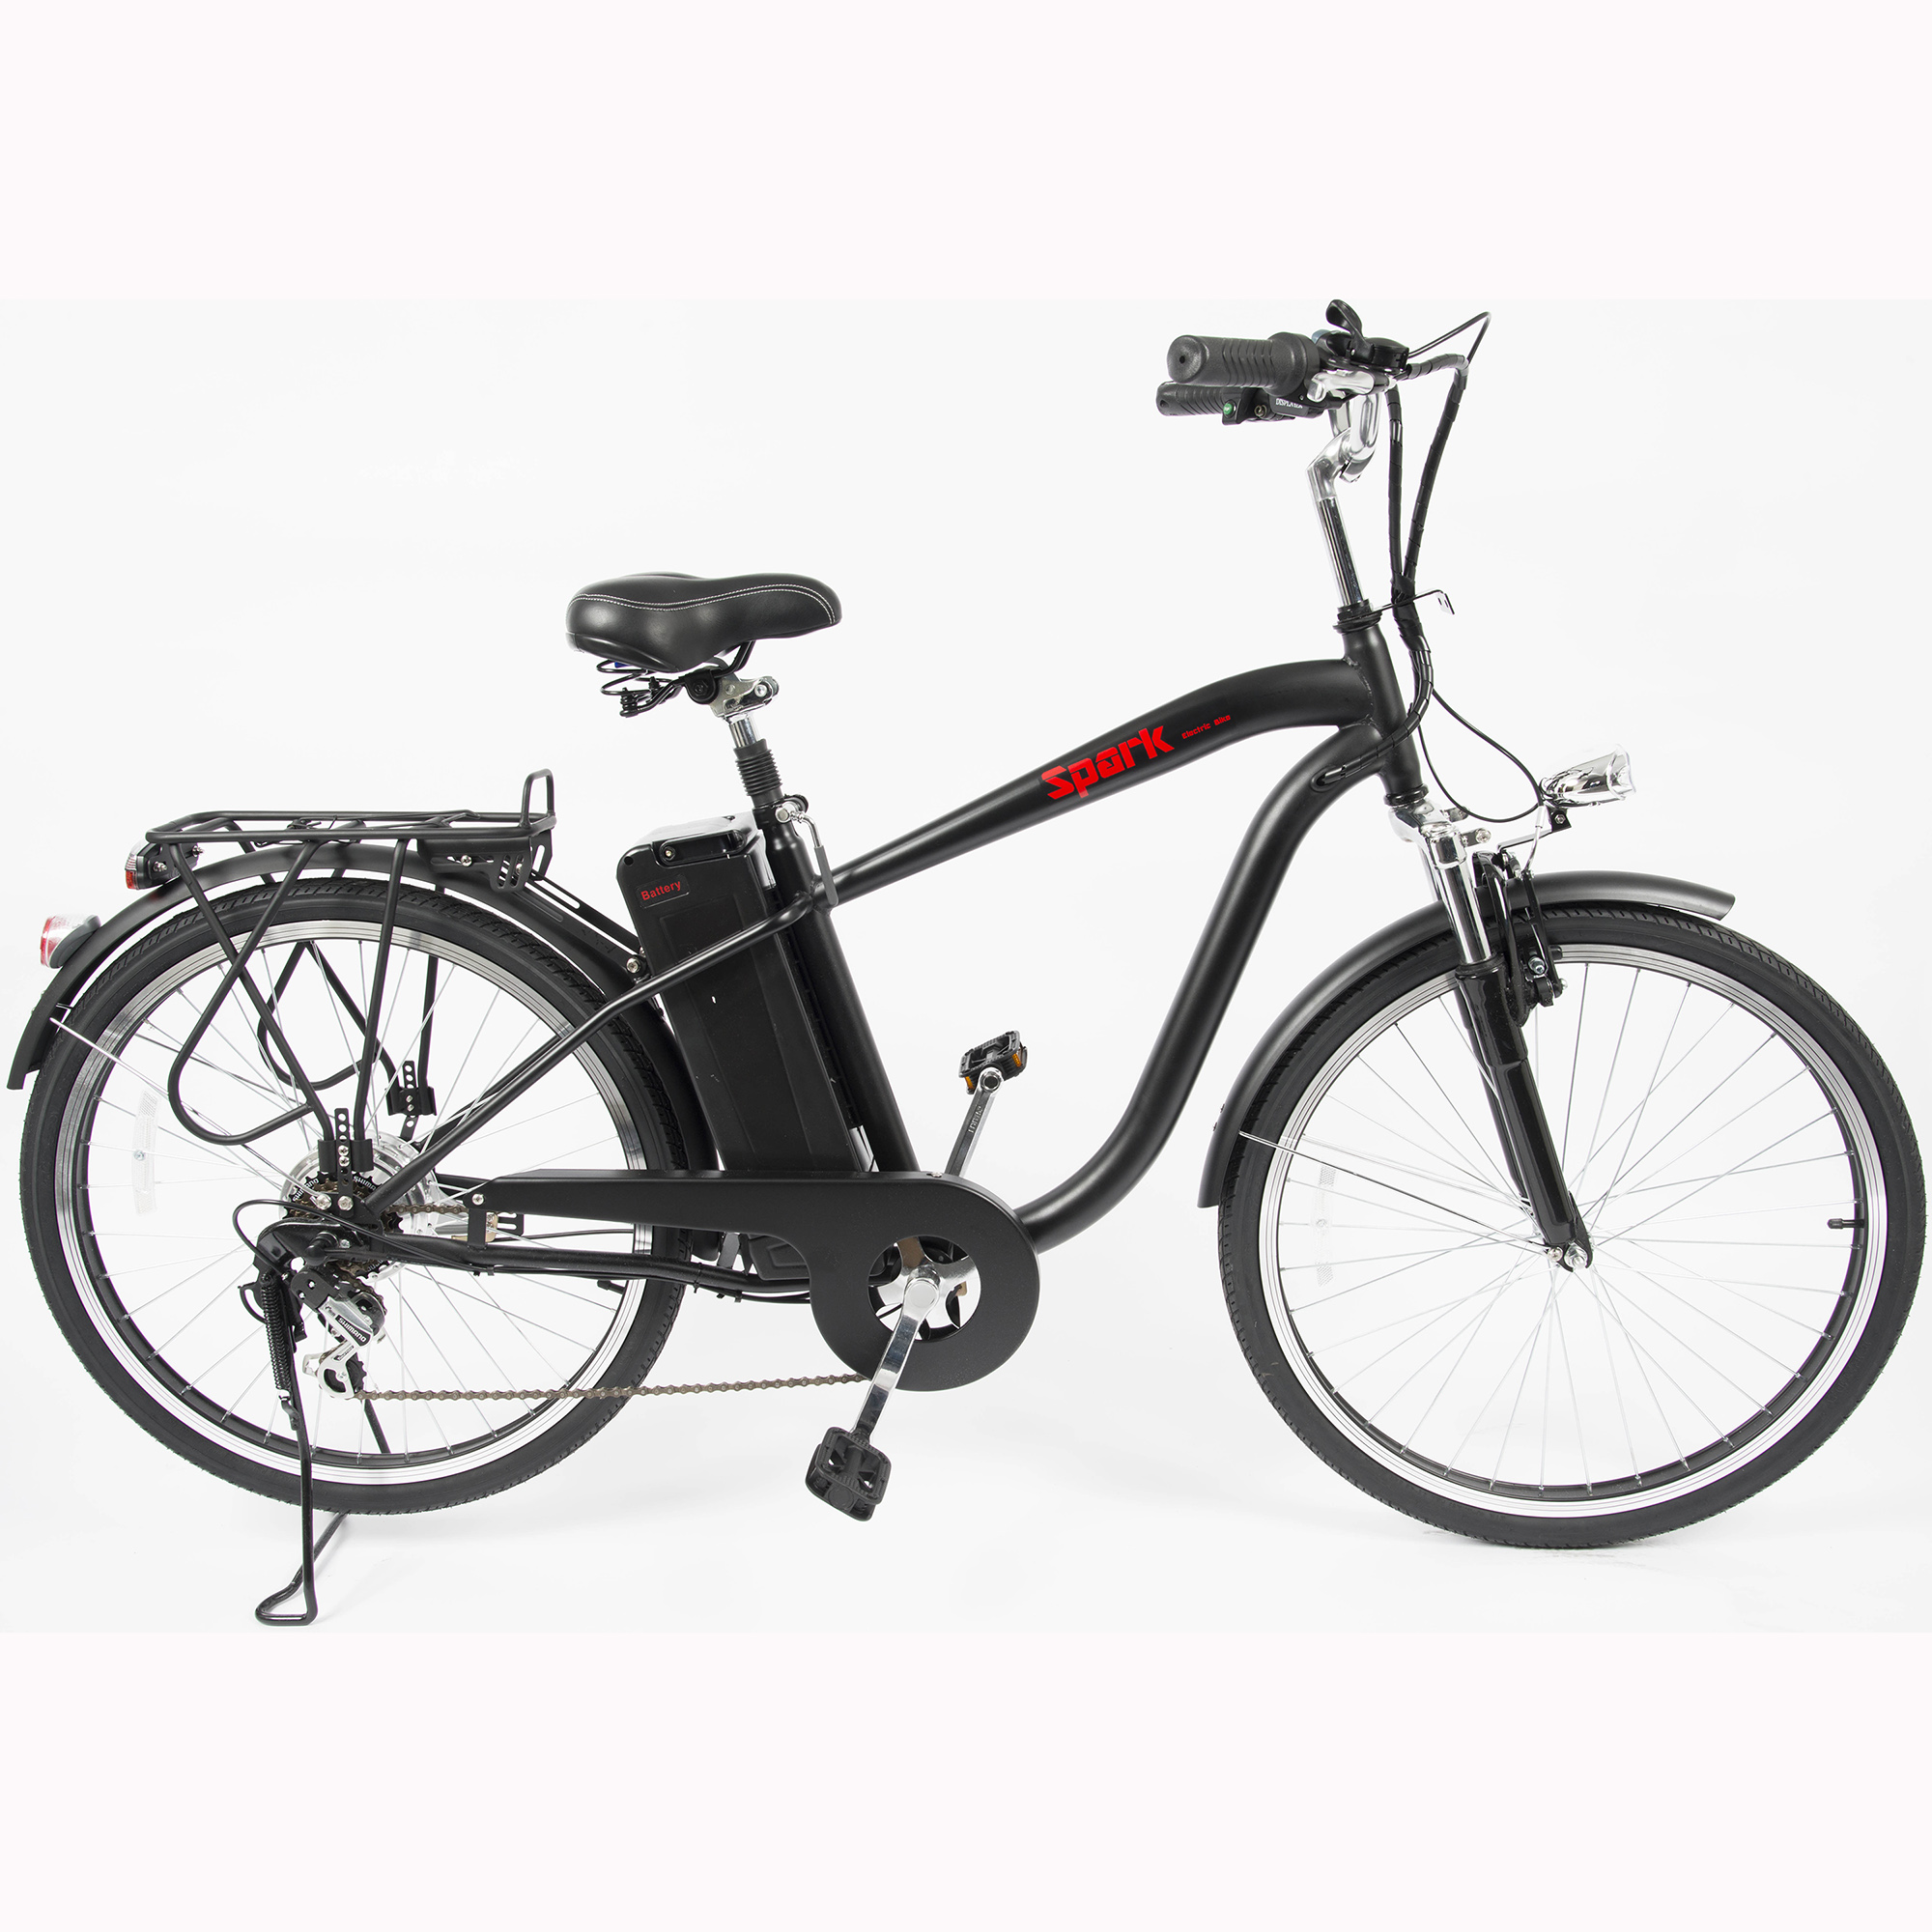 Black Spark eBike for Men